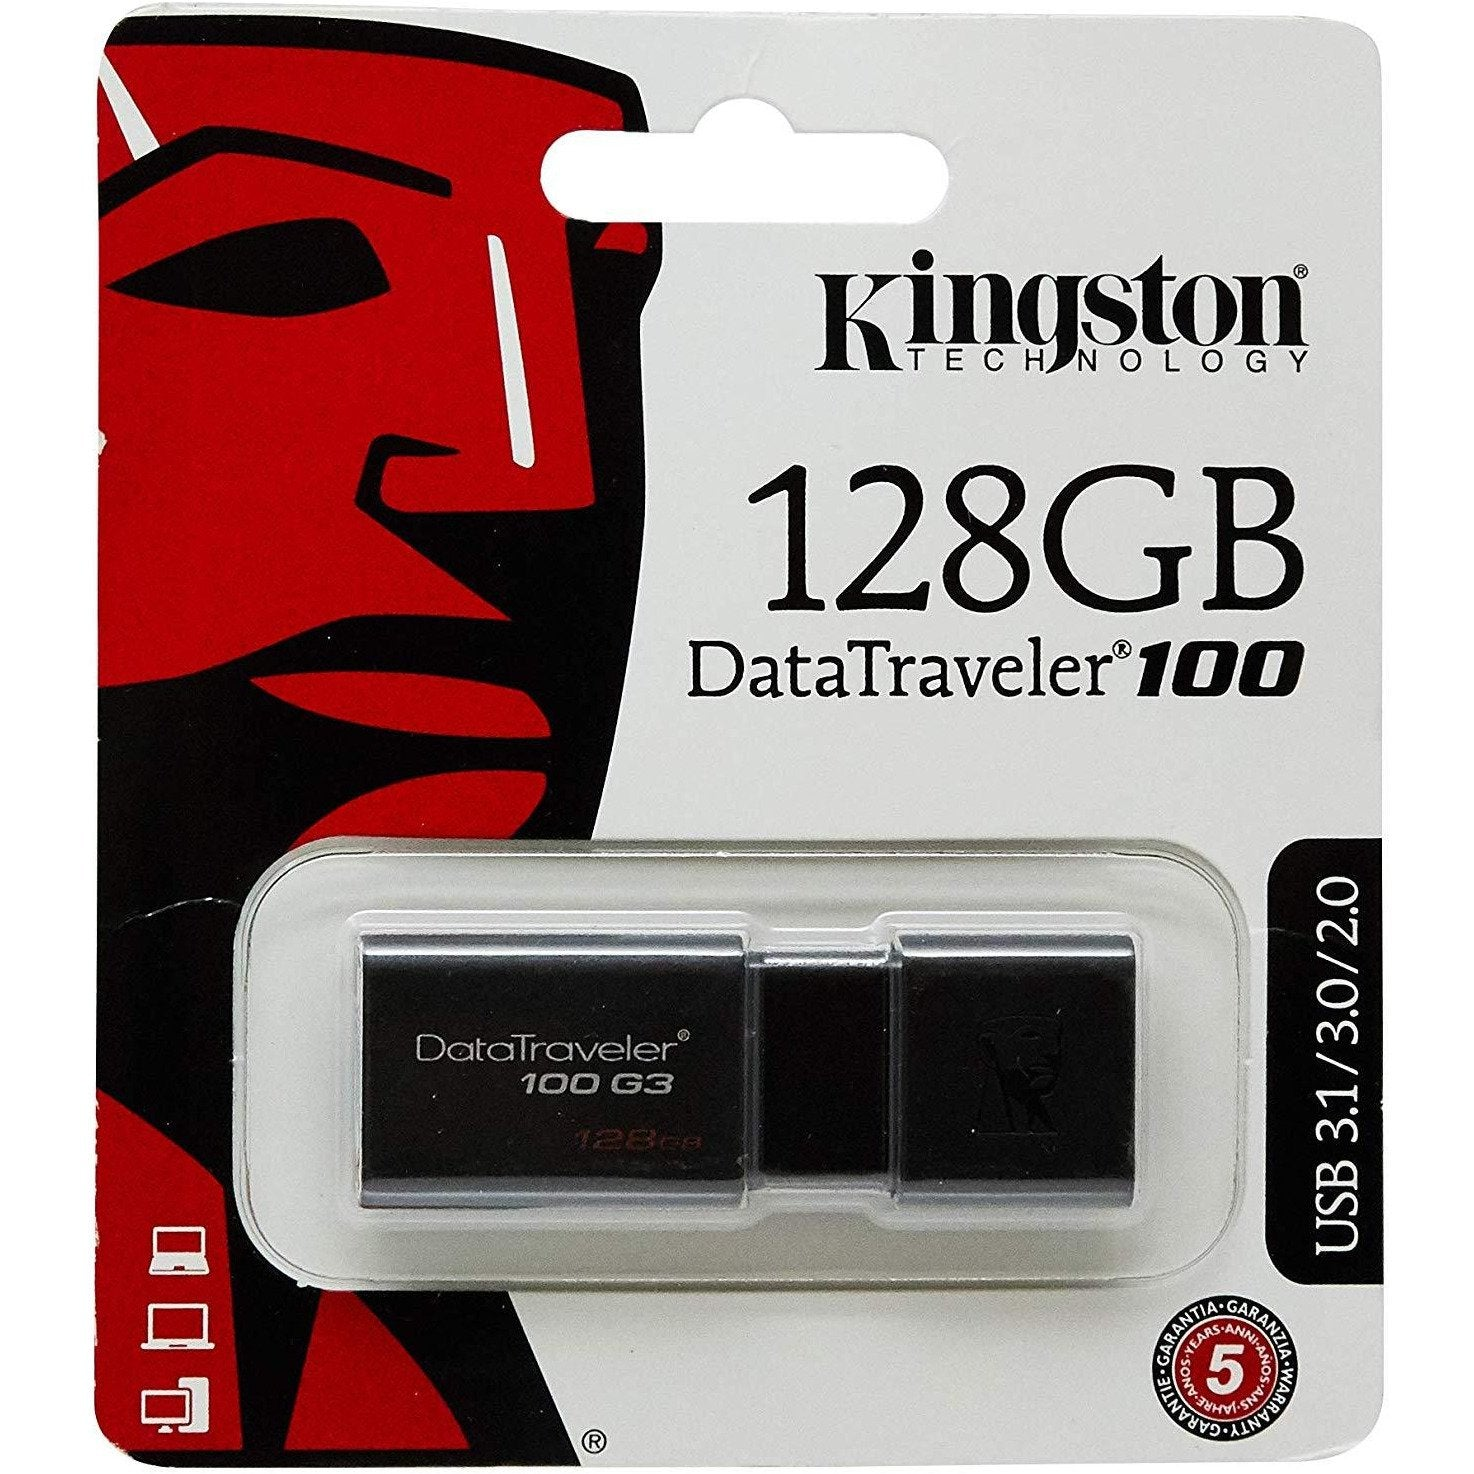 Kingston DataTraveler 100 128GB USB Memory Stick